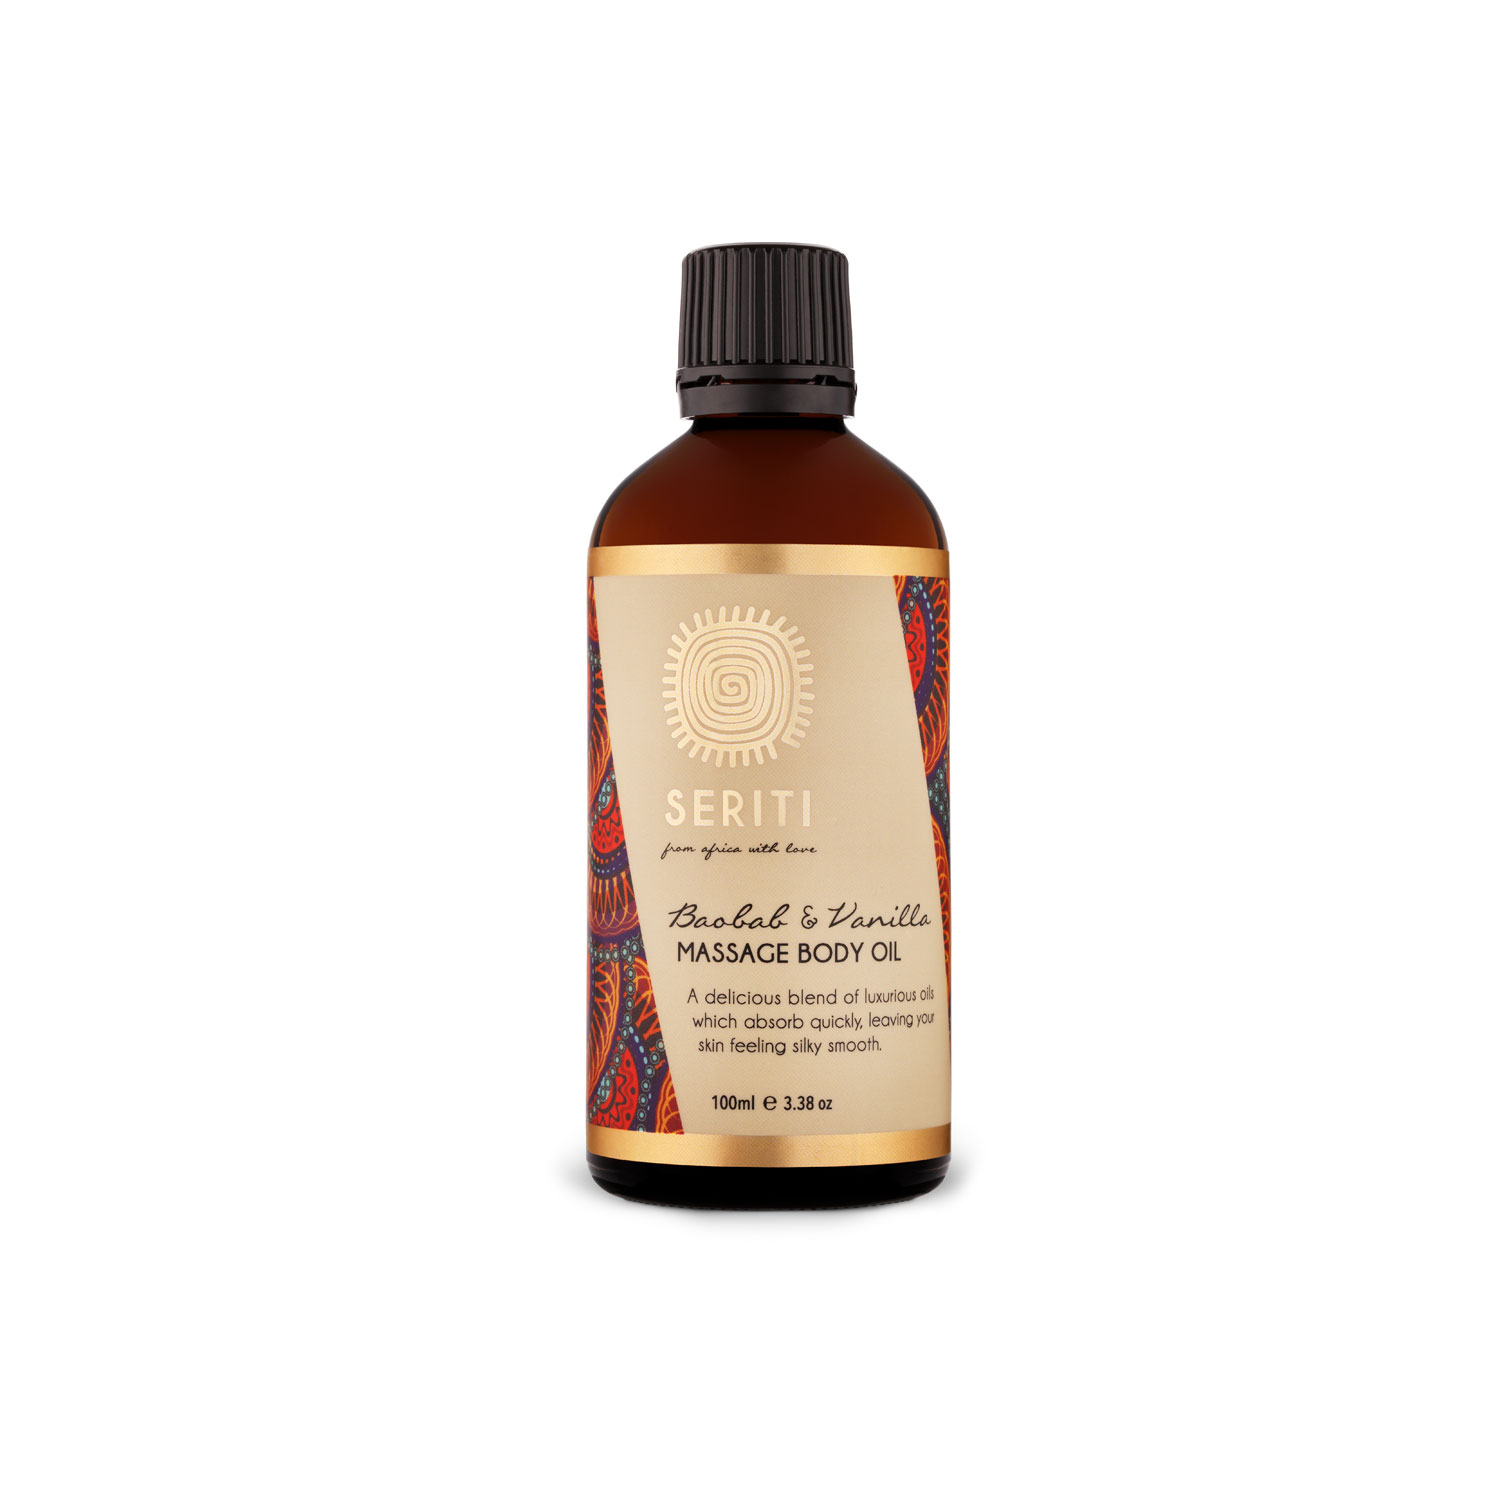 Baobab & Vanilla Massage Body Oil